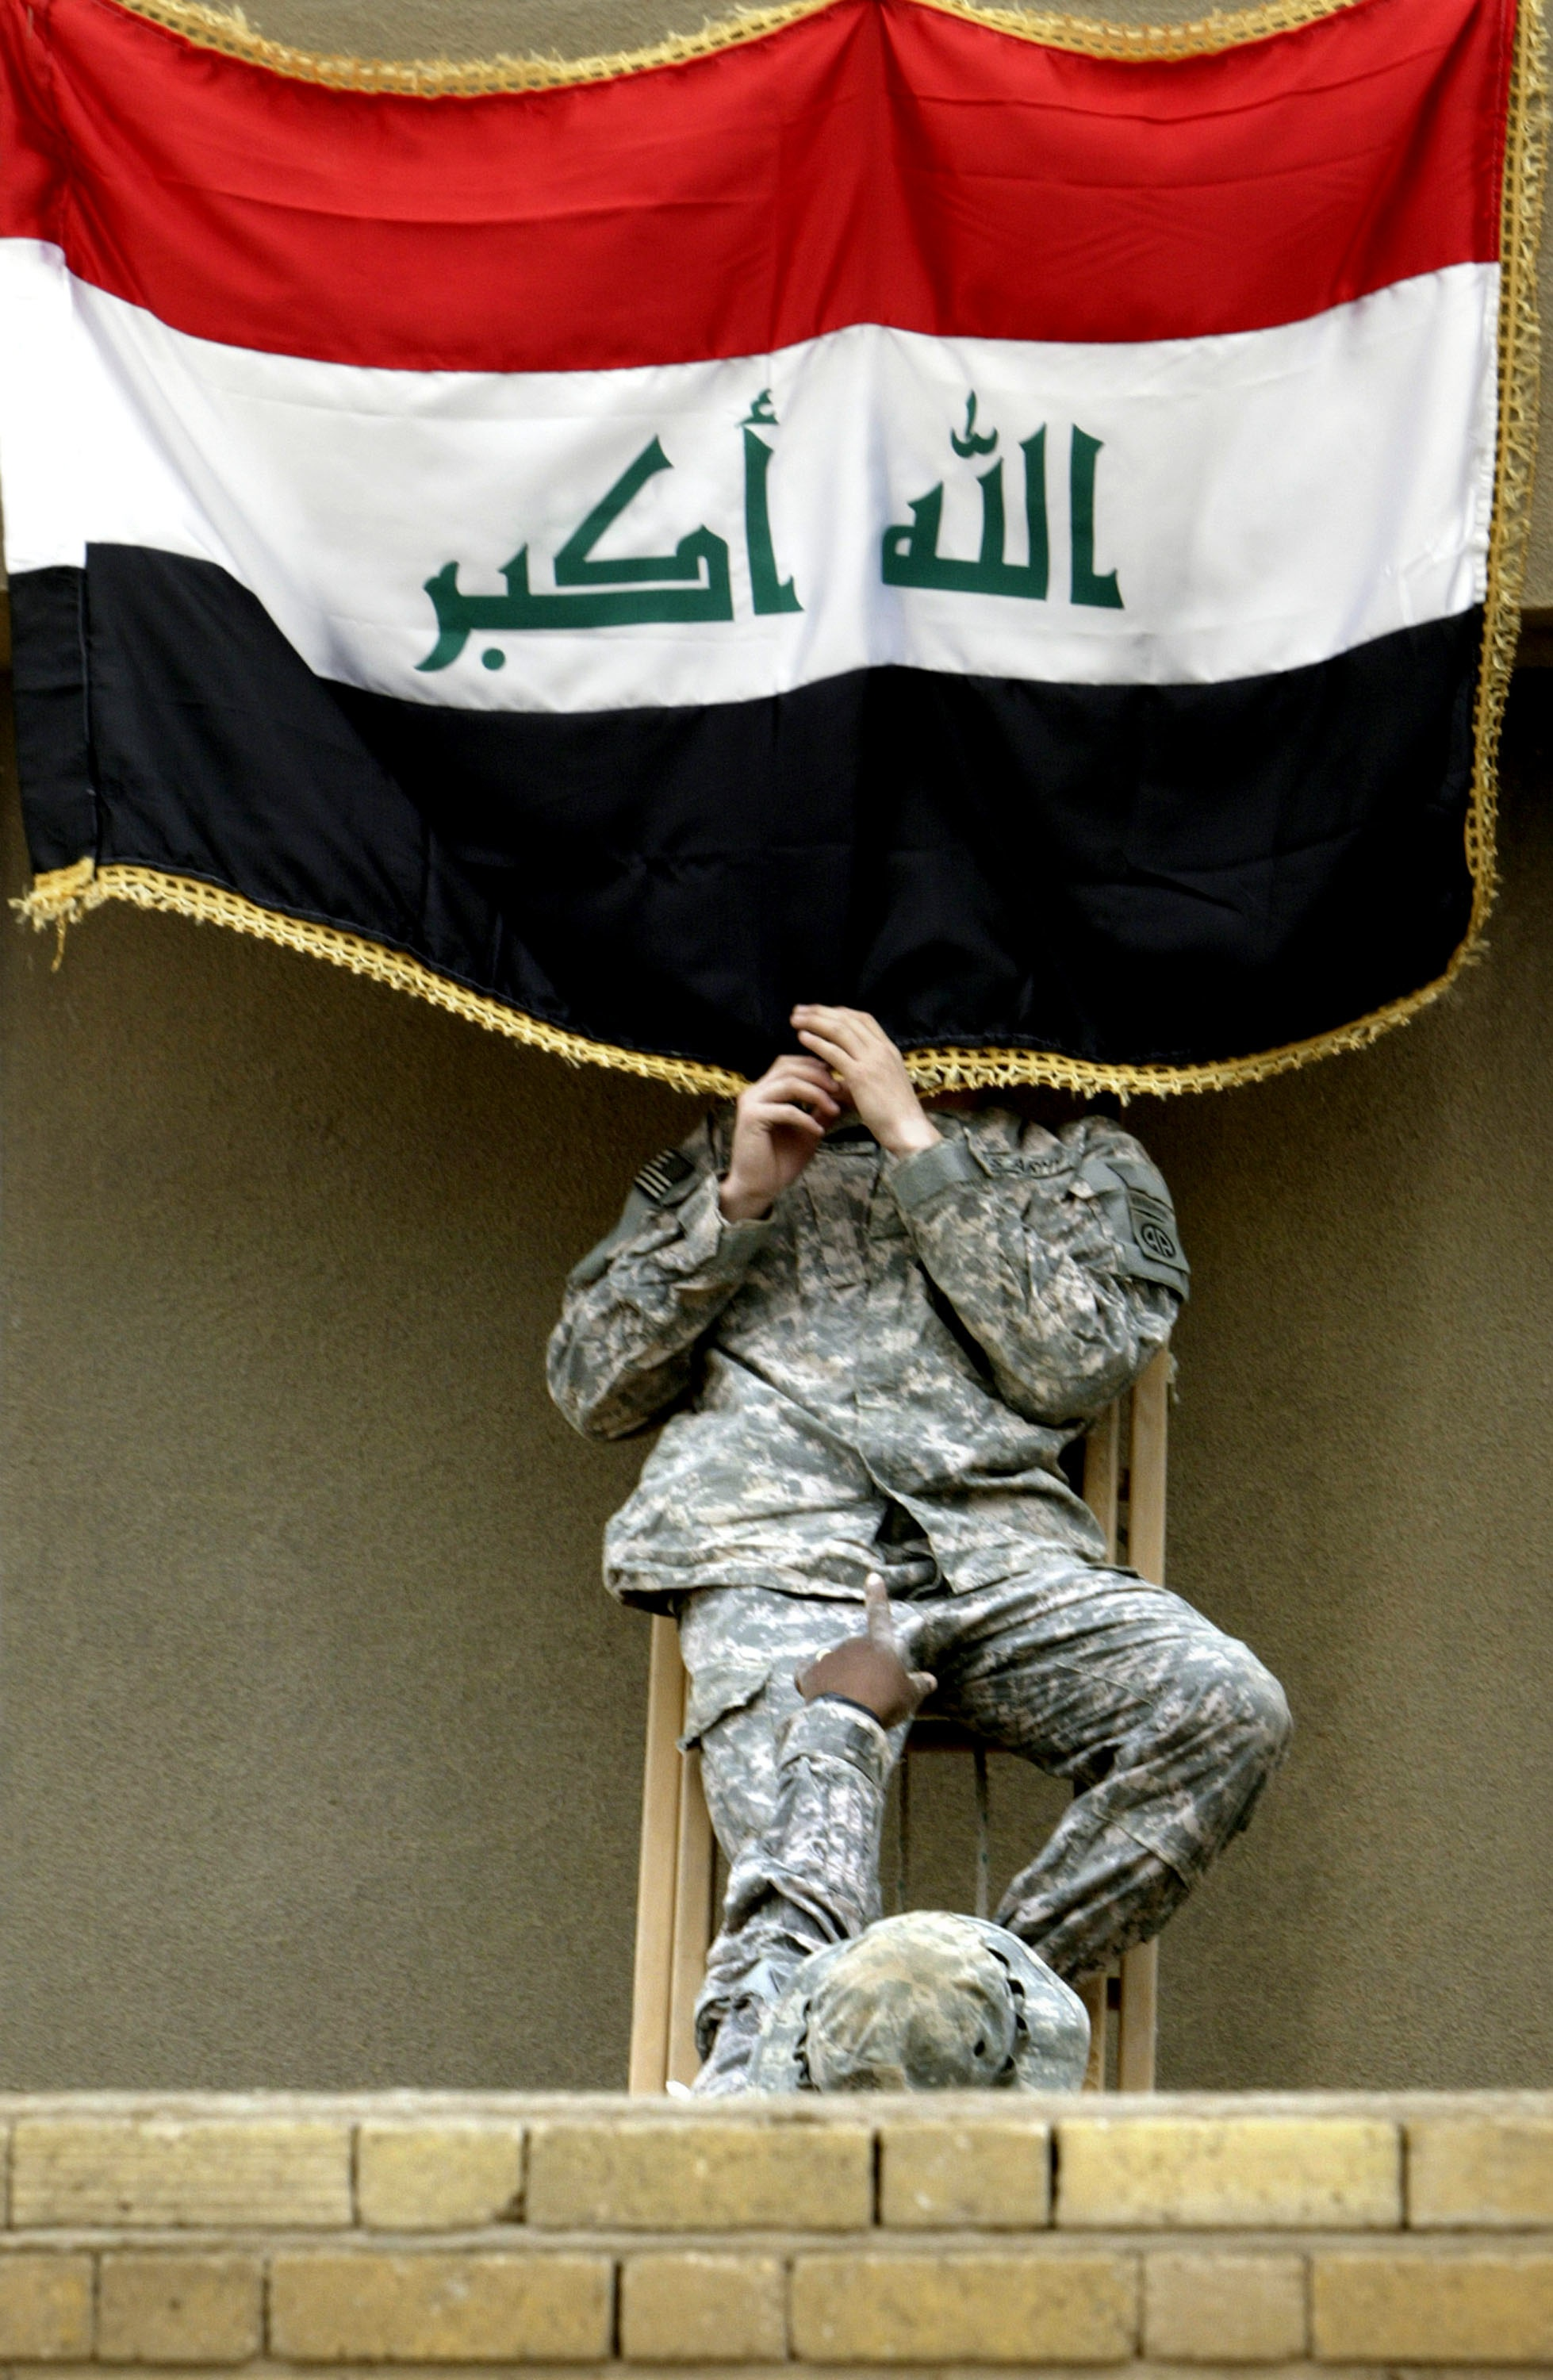 Wathiq Khuzaie/Getty Images. BAGHDAD, IRAQ, MARCH 31: A U.S army soldier prepares an Iraqi flag during a handover ceremony at Camp Rustimiyah March 31, 2009 in Baghdad, Iraq.